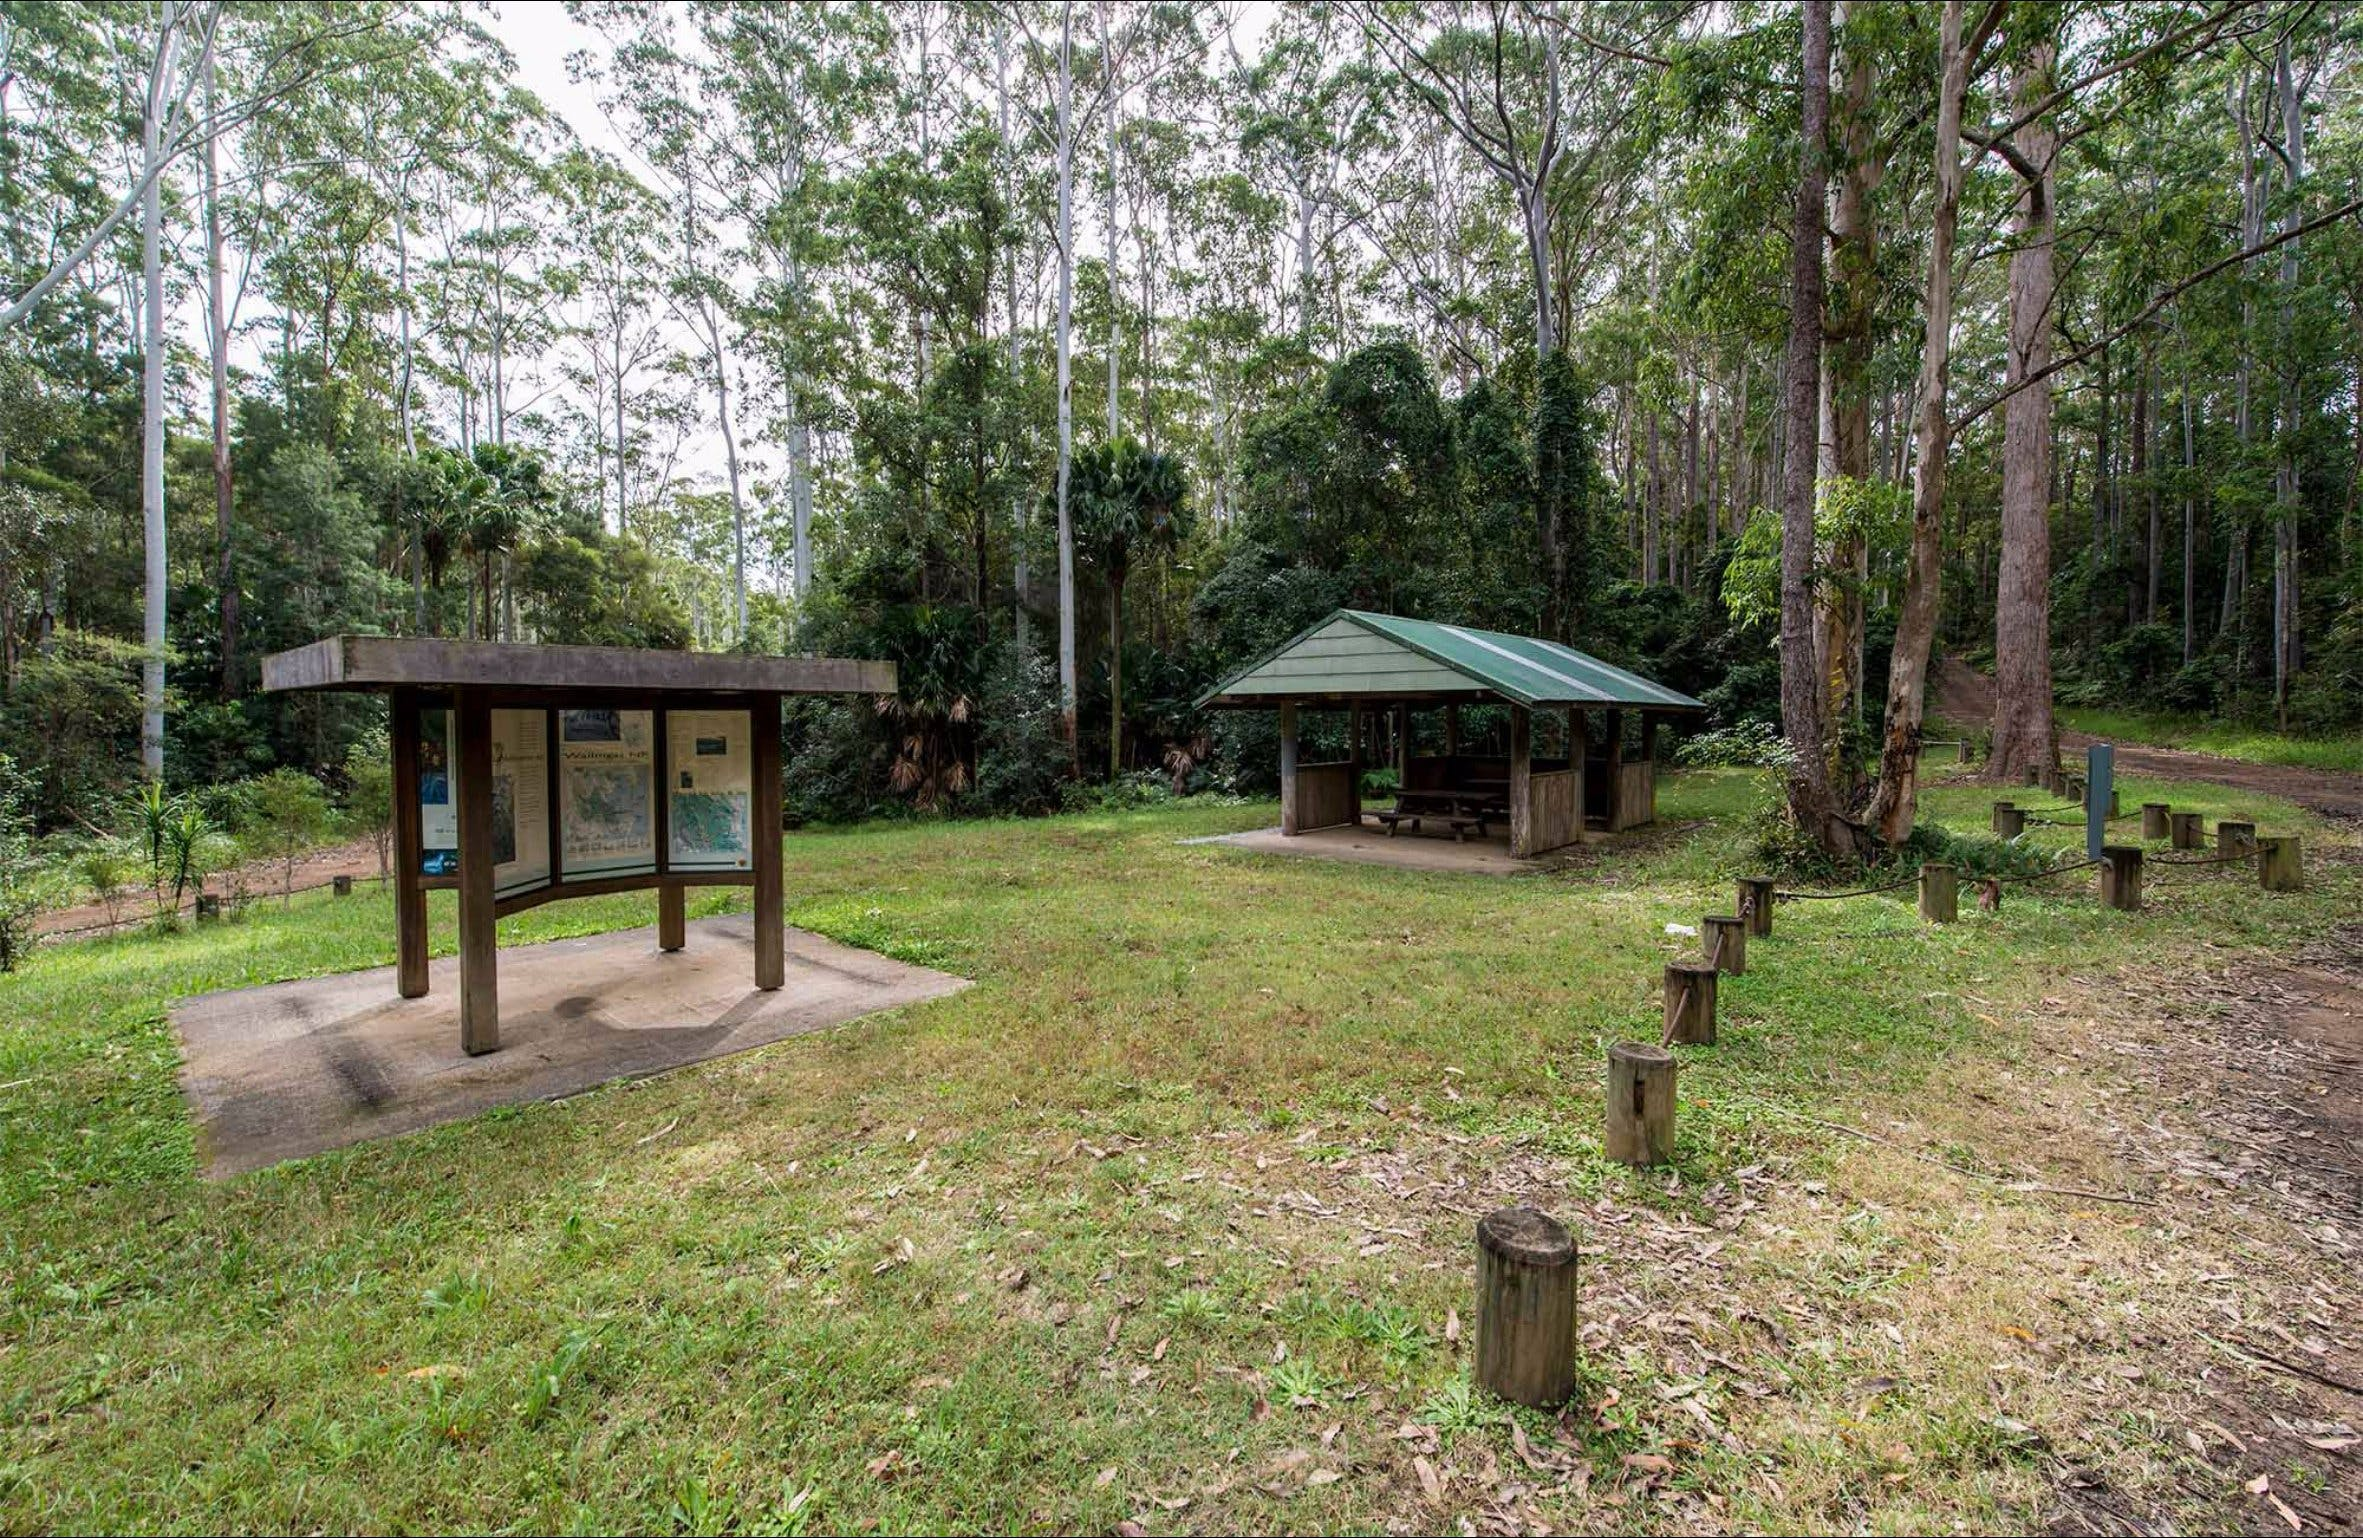 Gur-um-bee picnic area - Accommodation Perth